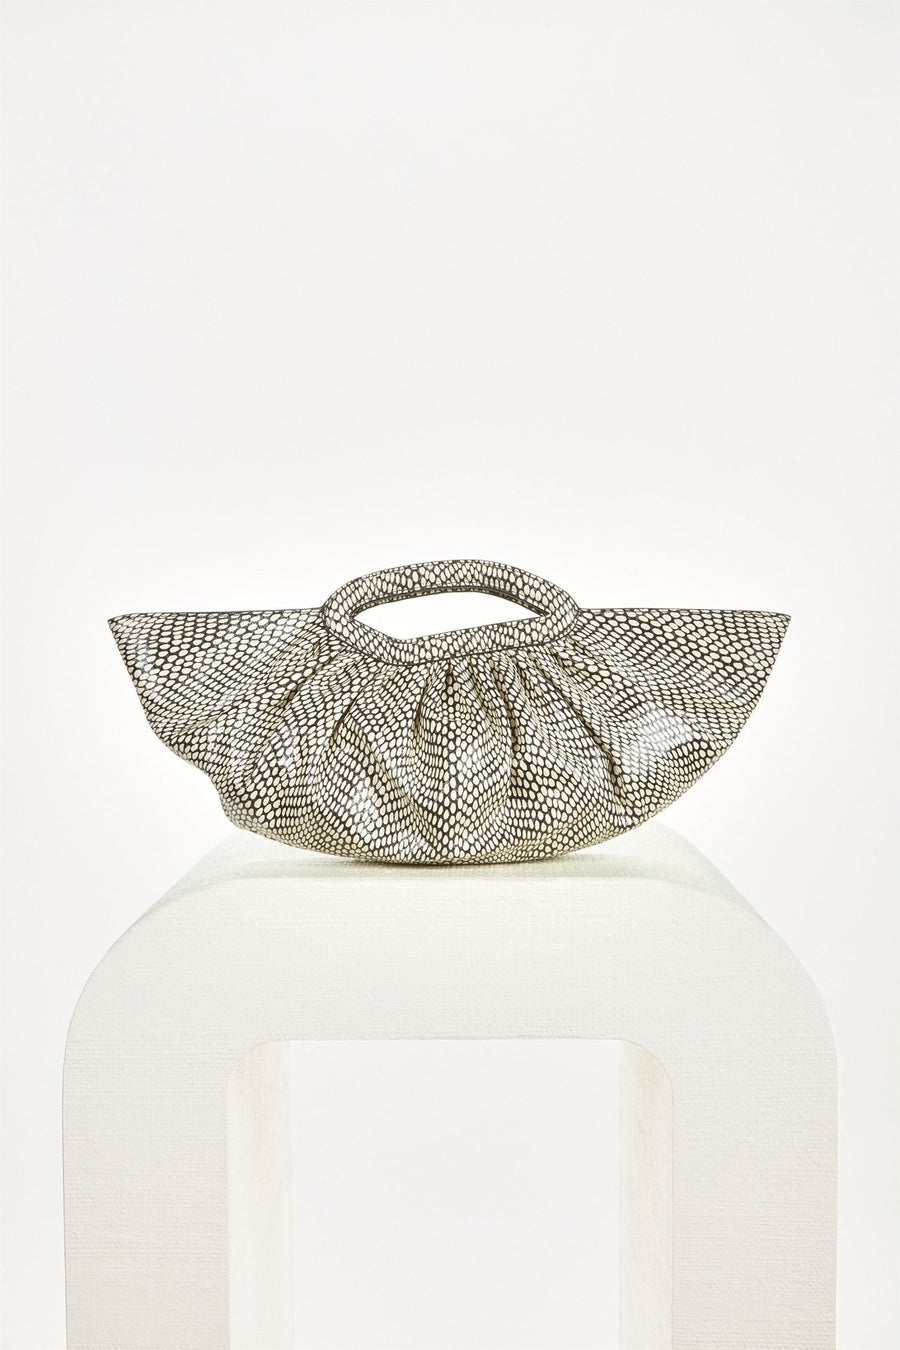 JADA CLUTCH - WHITE MULTI